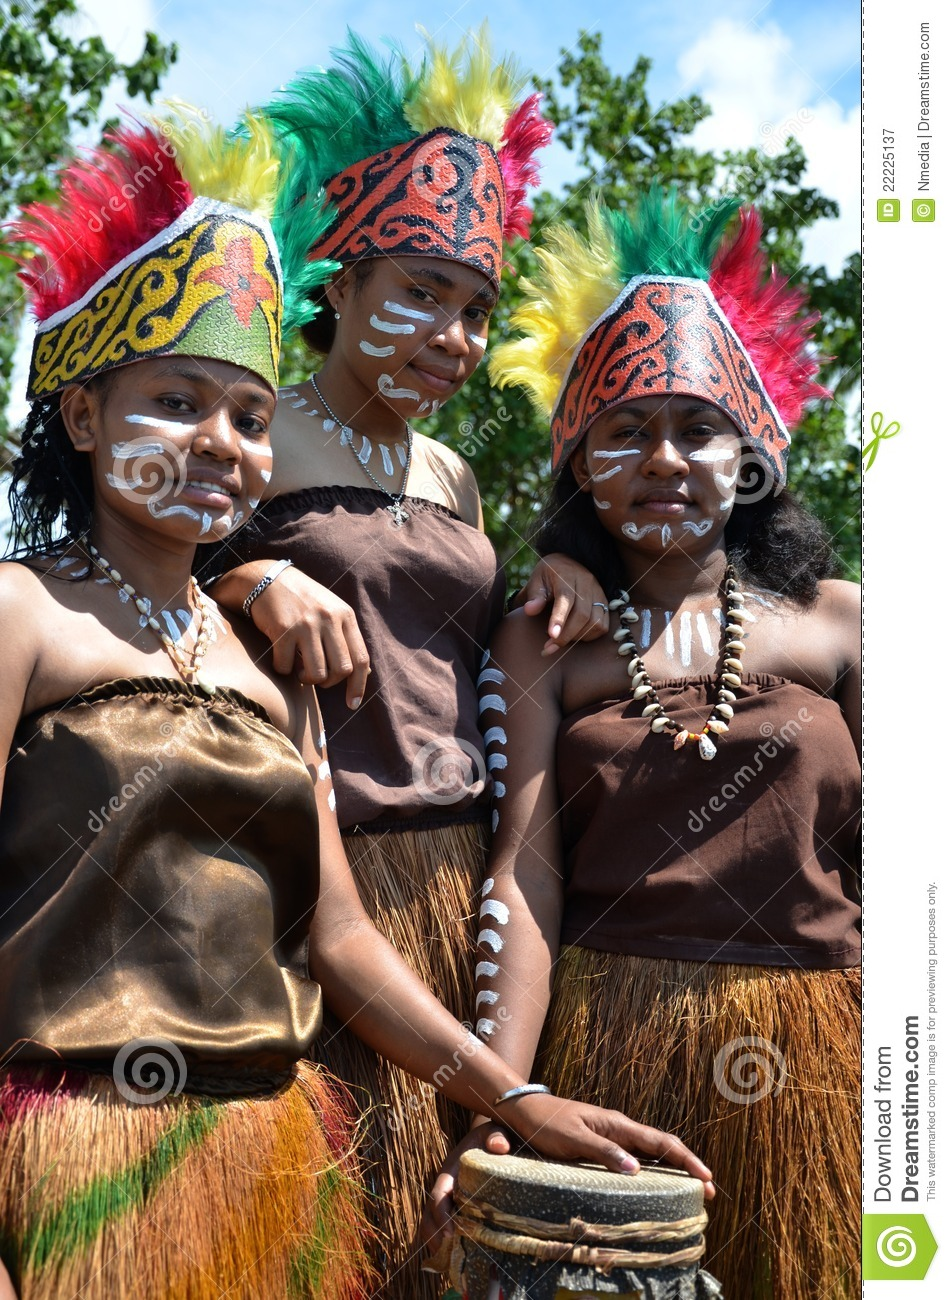 Traditional Dancer of Papua